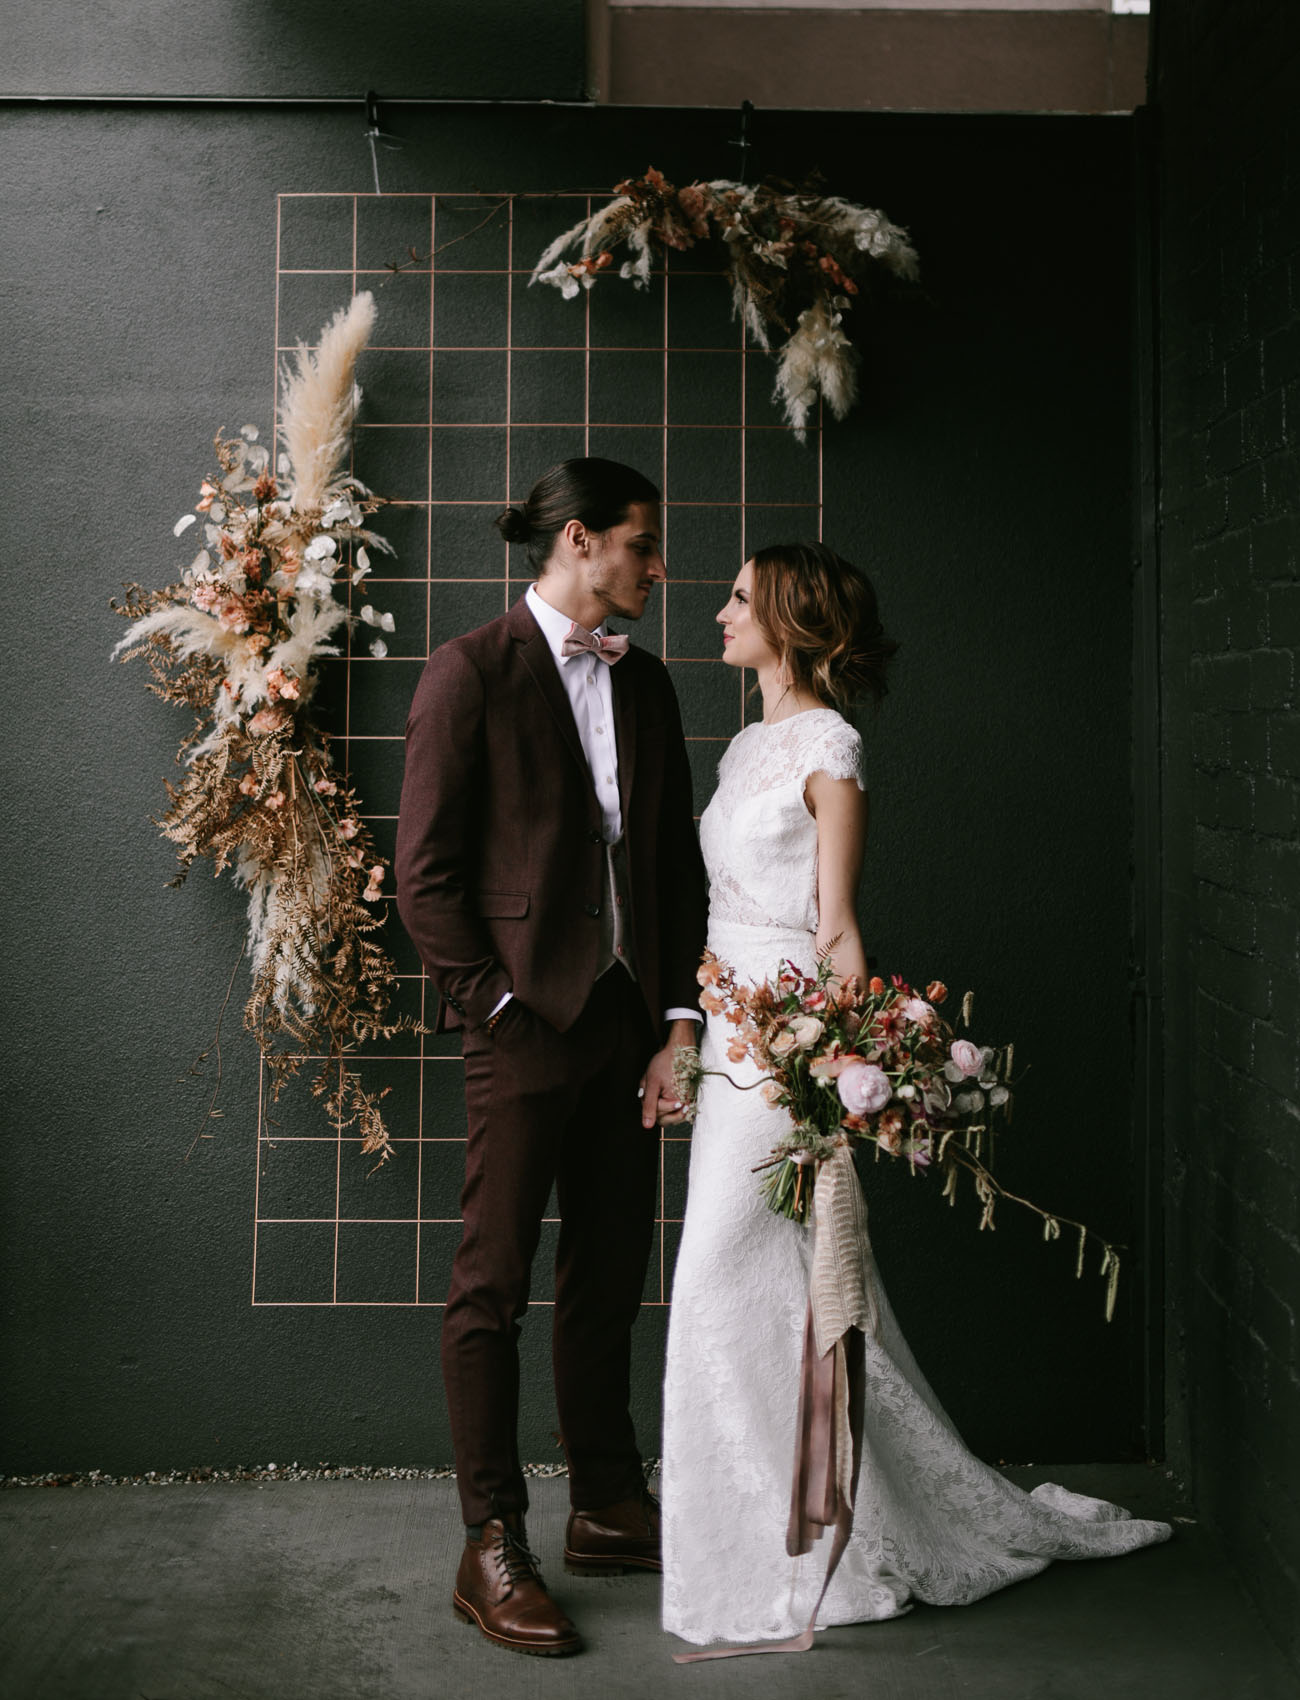 For the bride  an all-lace wedding dress with a long train by Anais Anette 31a29ad12